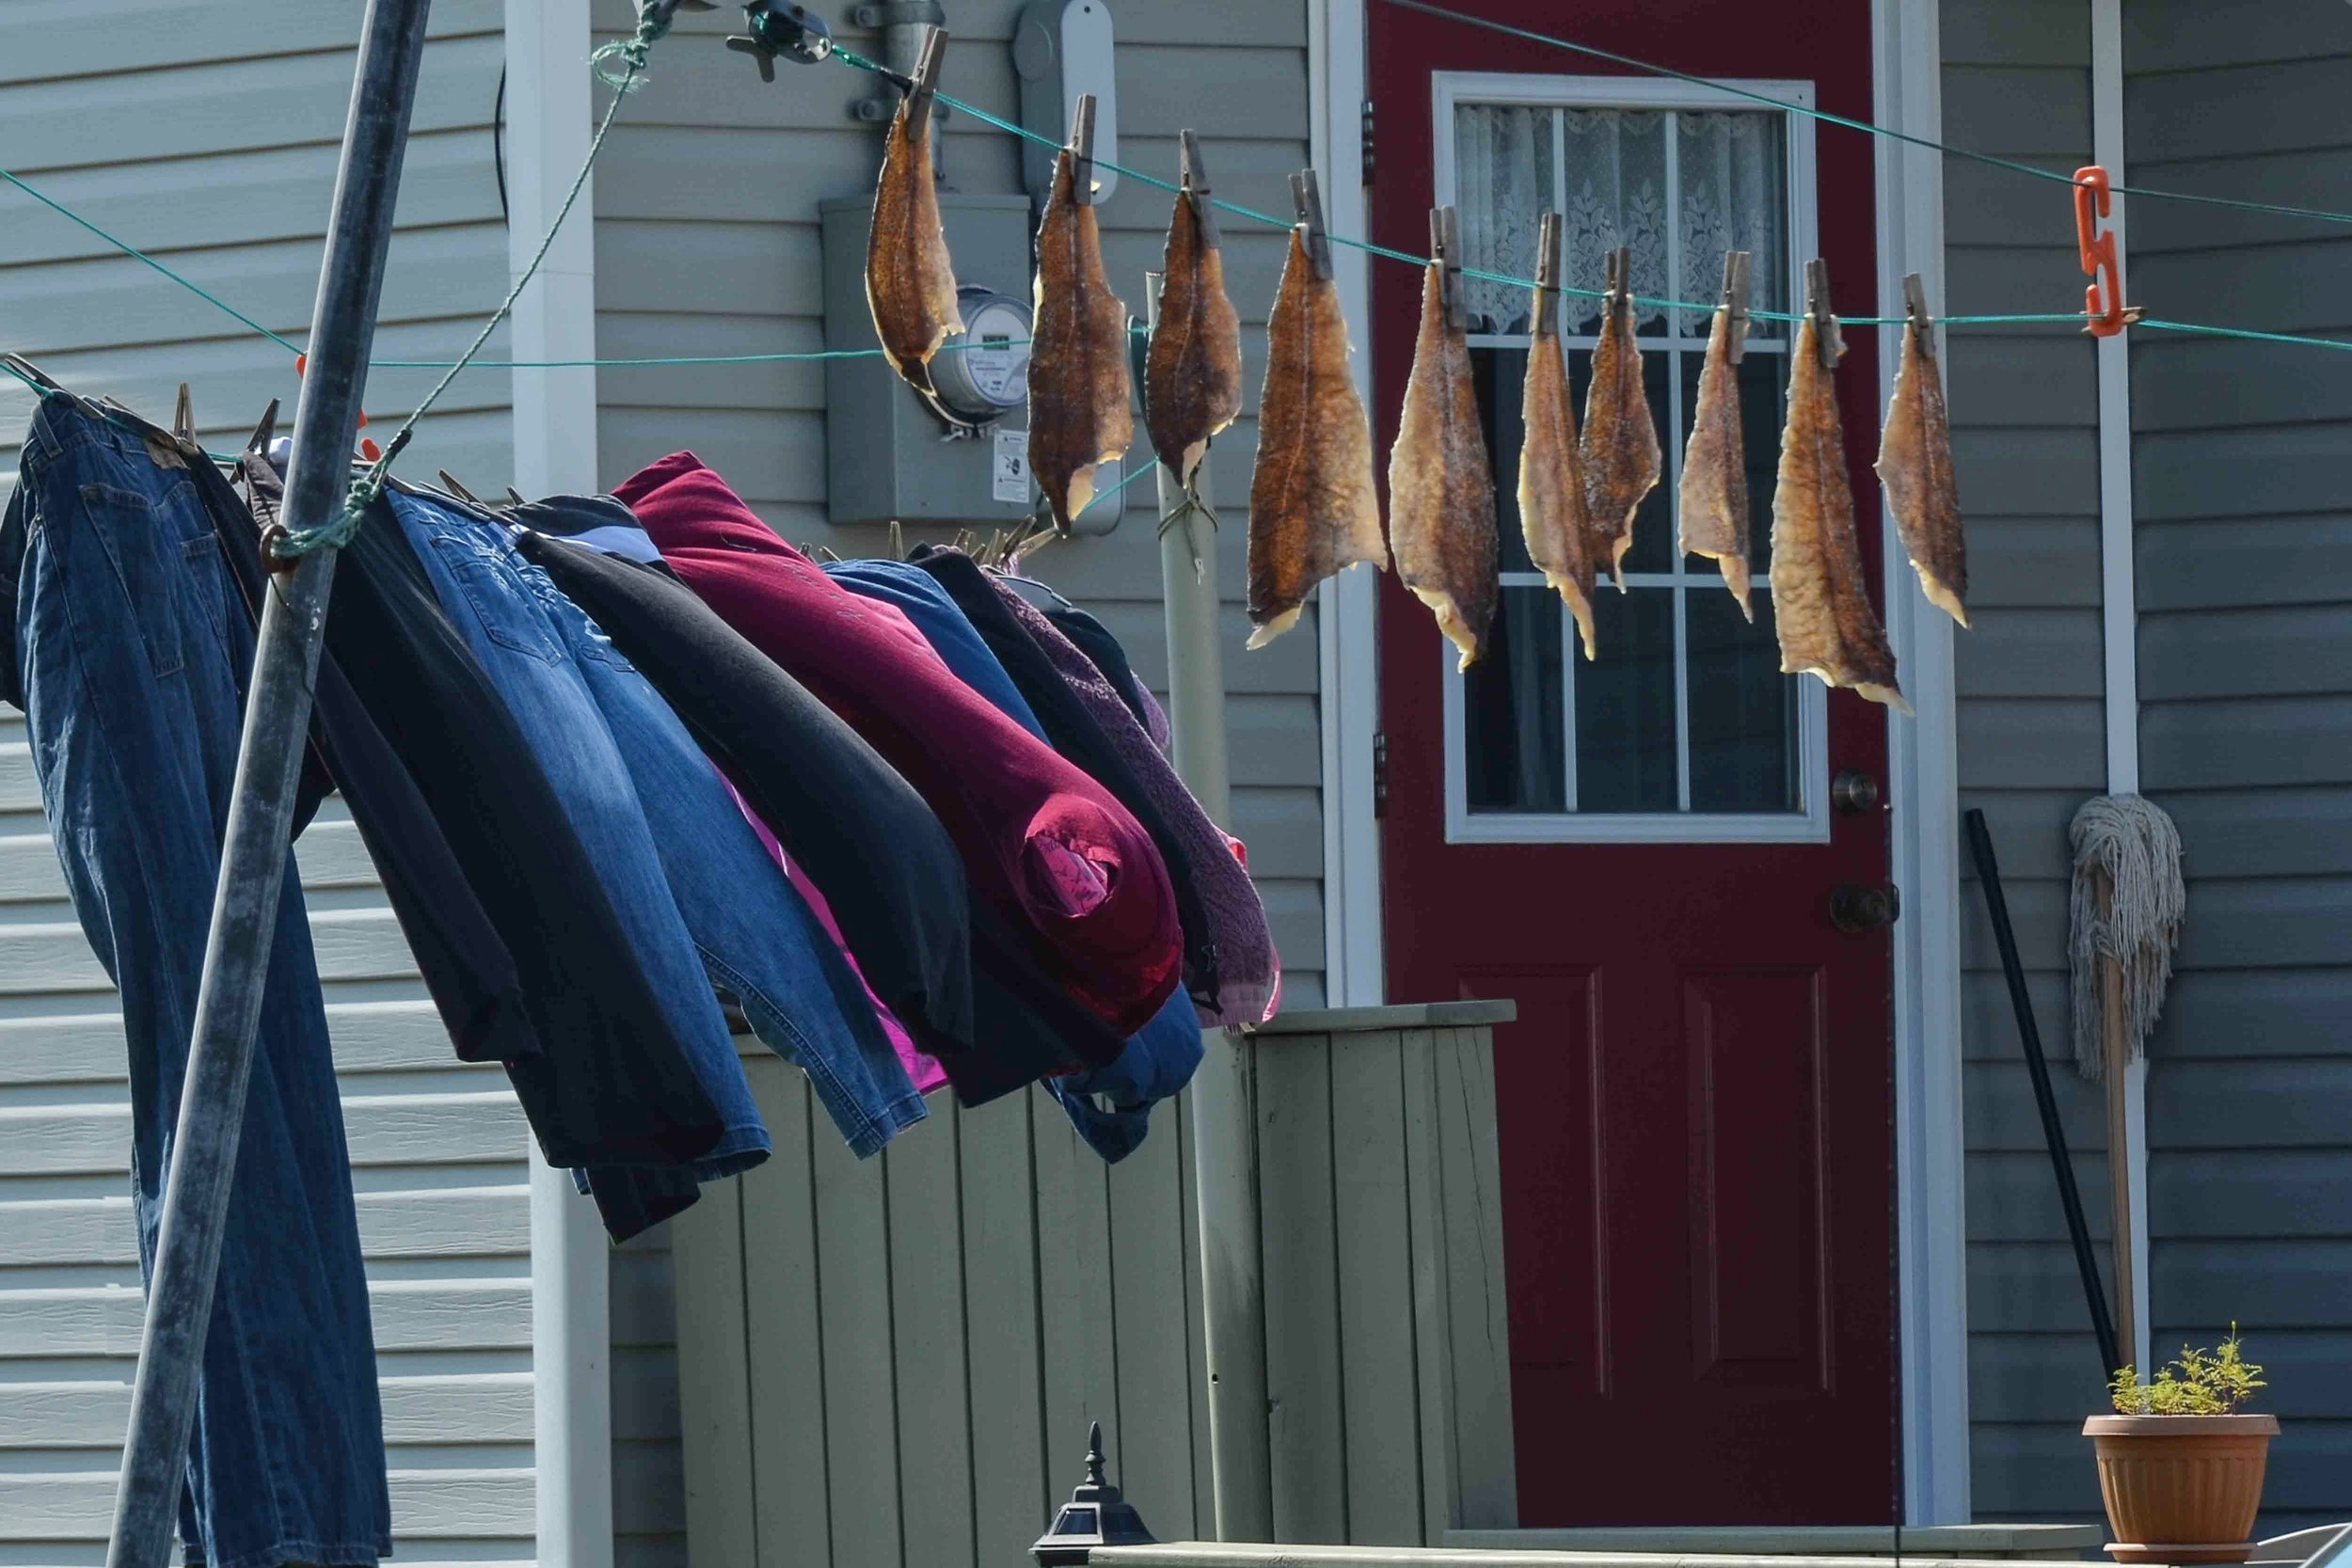 Clothes n' cod. Drying cod is a typical village scene in Newfoundland out villages. Locals are allowed a small recreational quota. These clothes line cod are the typical size these days. In the late 1800s large cod were half the size of a man.